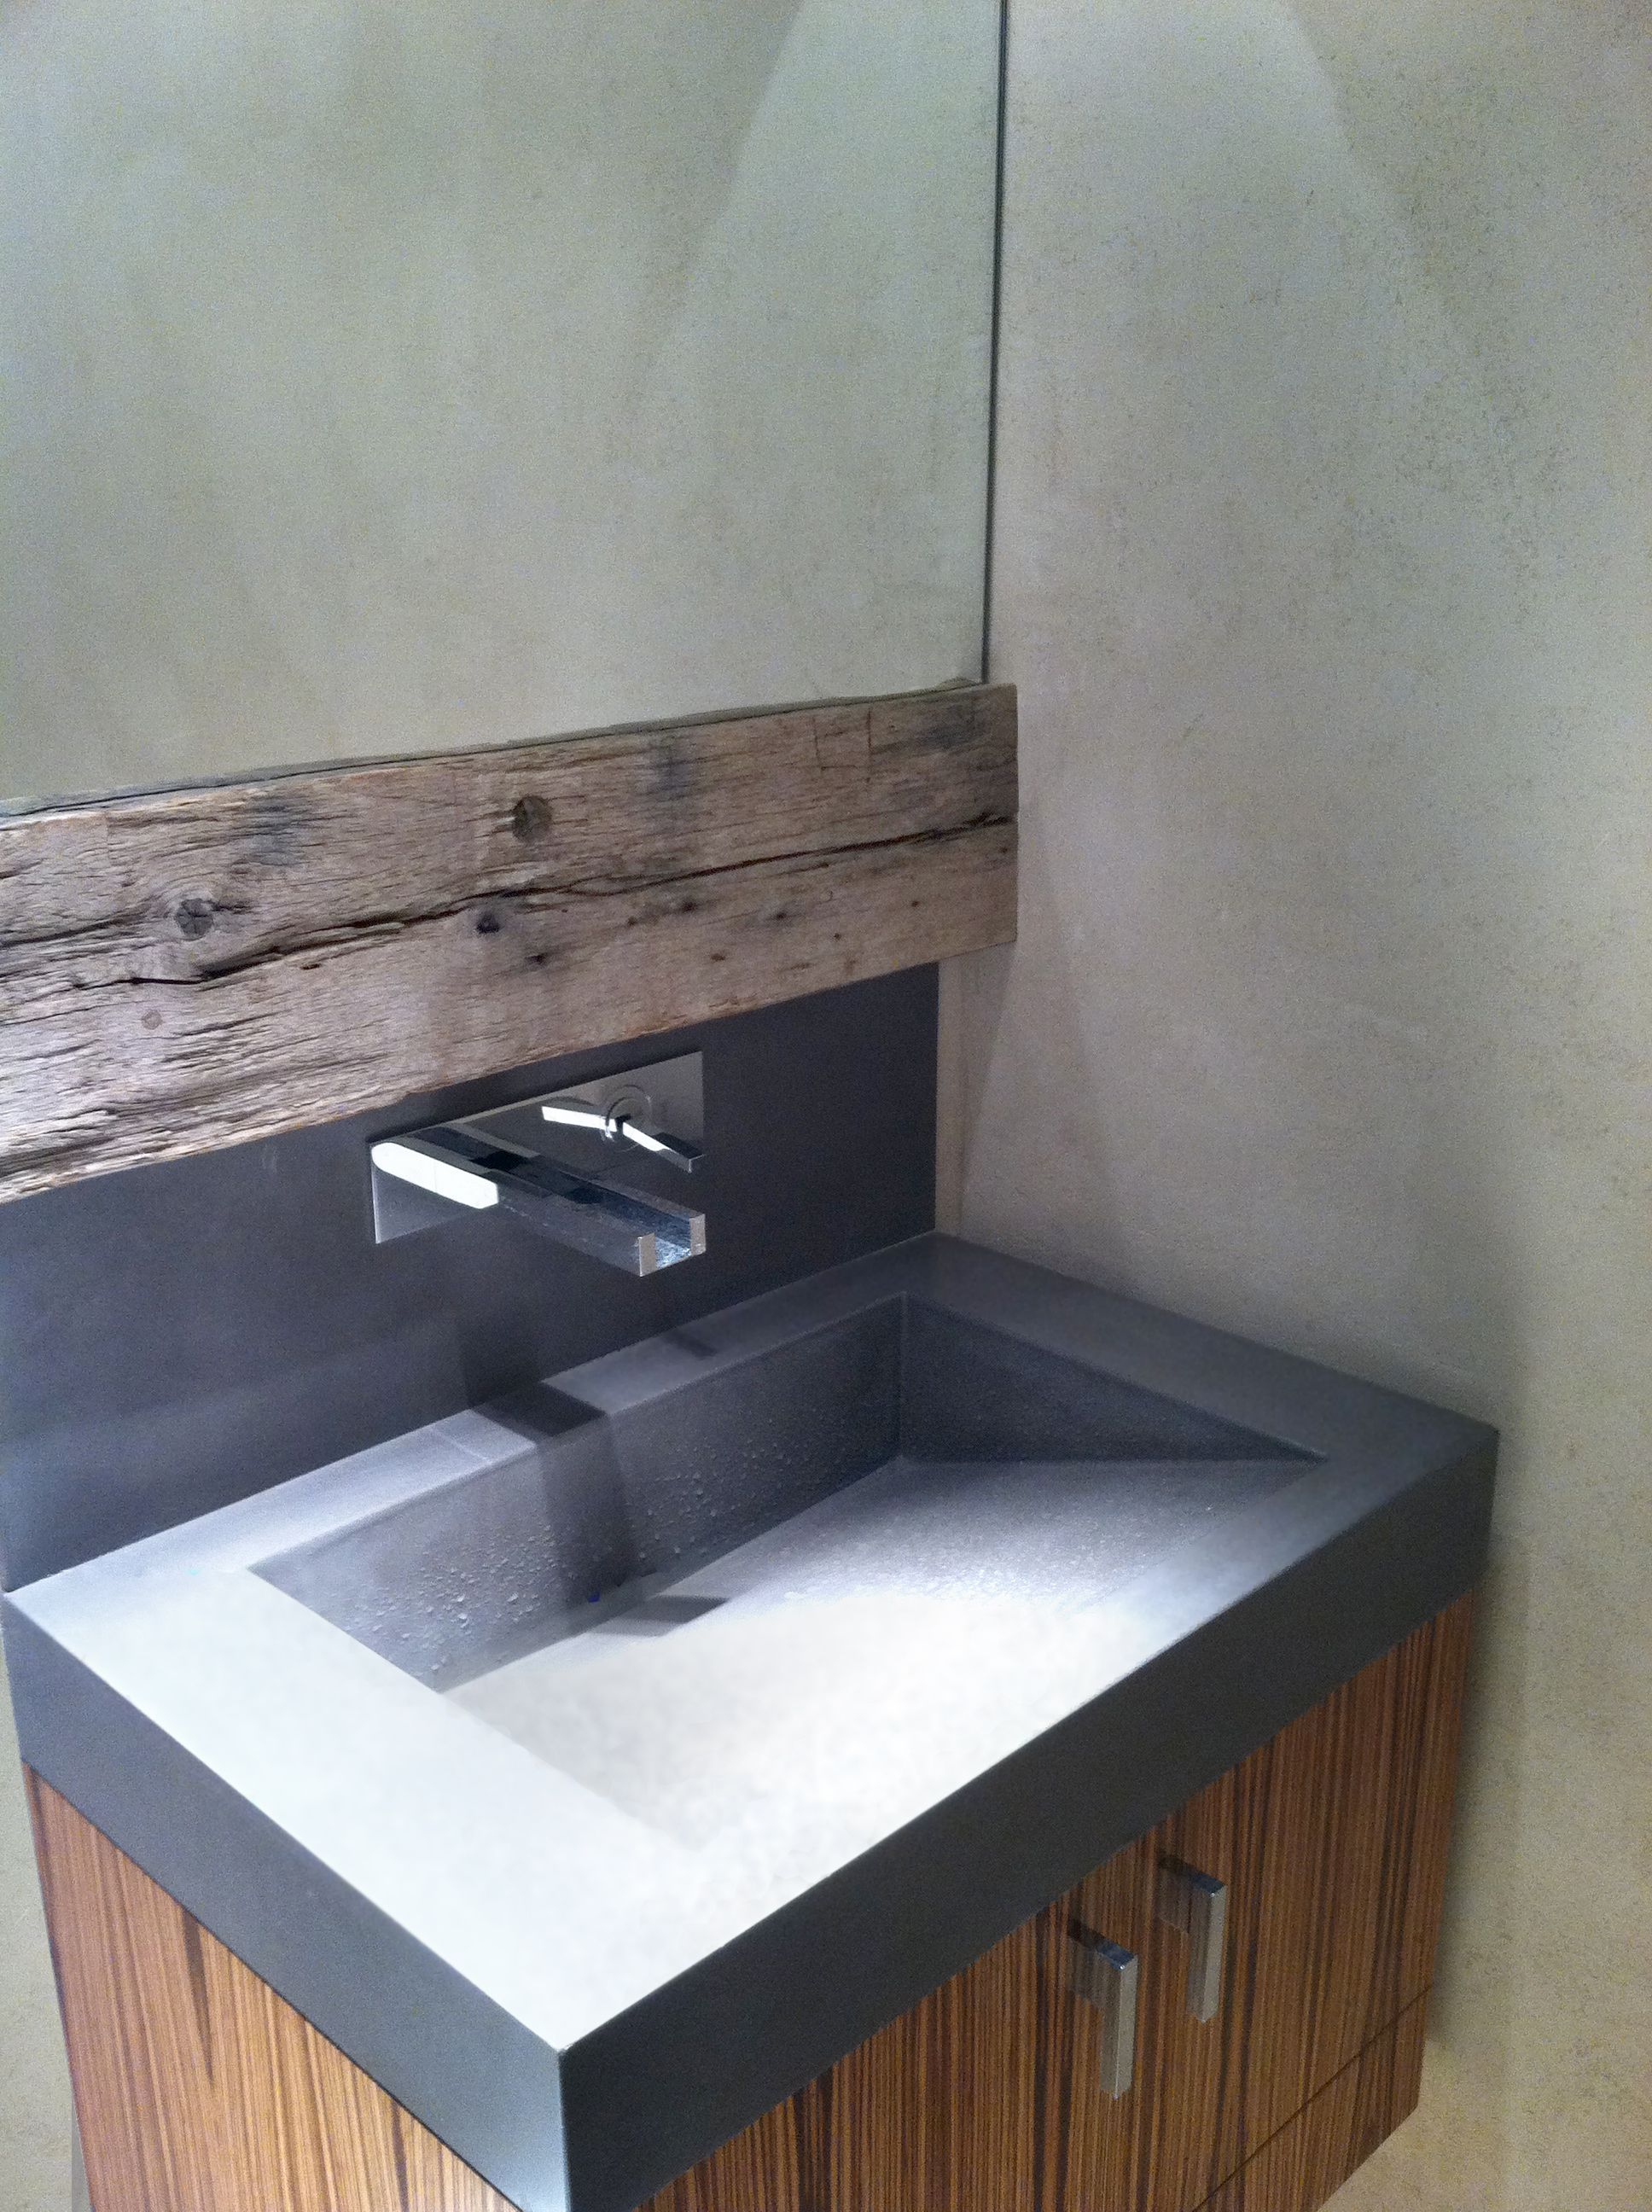 This concrete sink was placed into a transitional apartment in